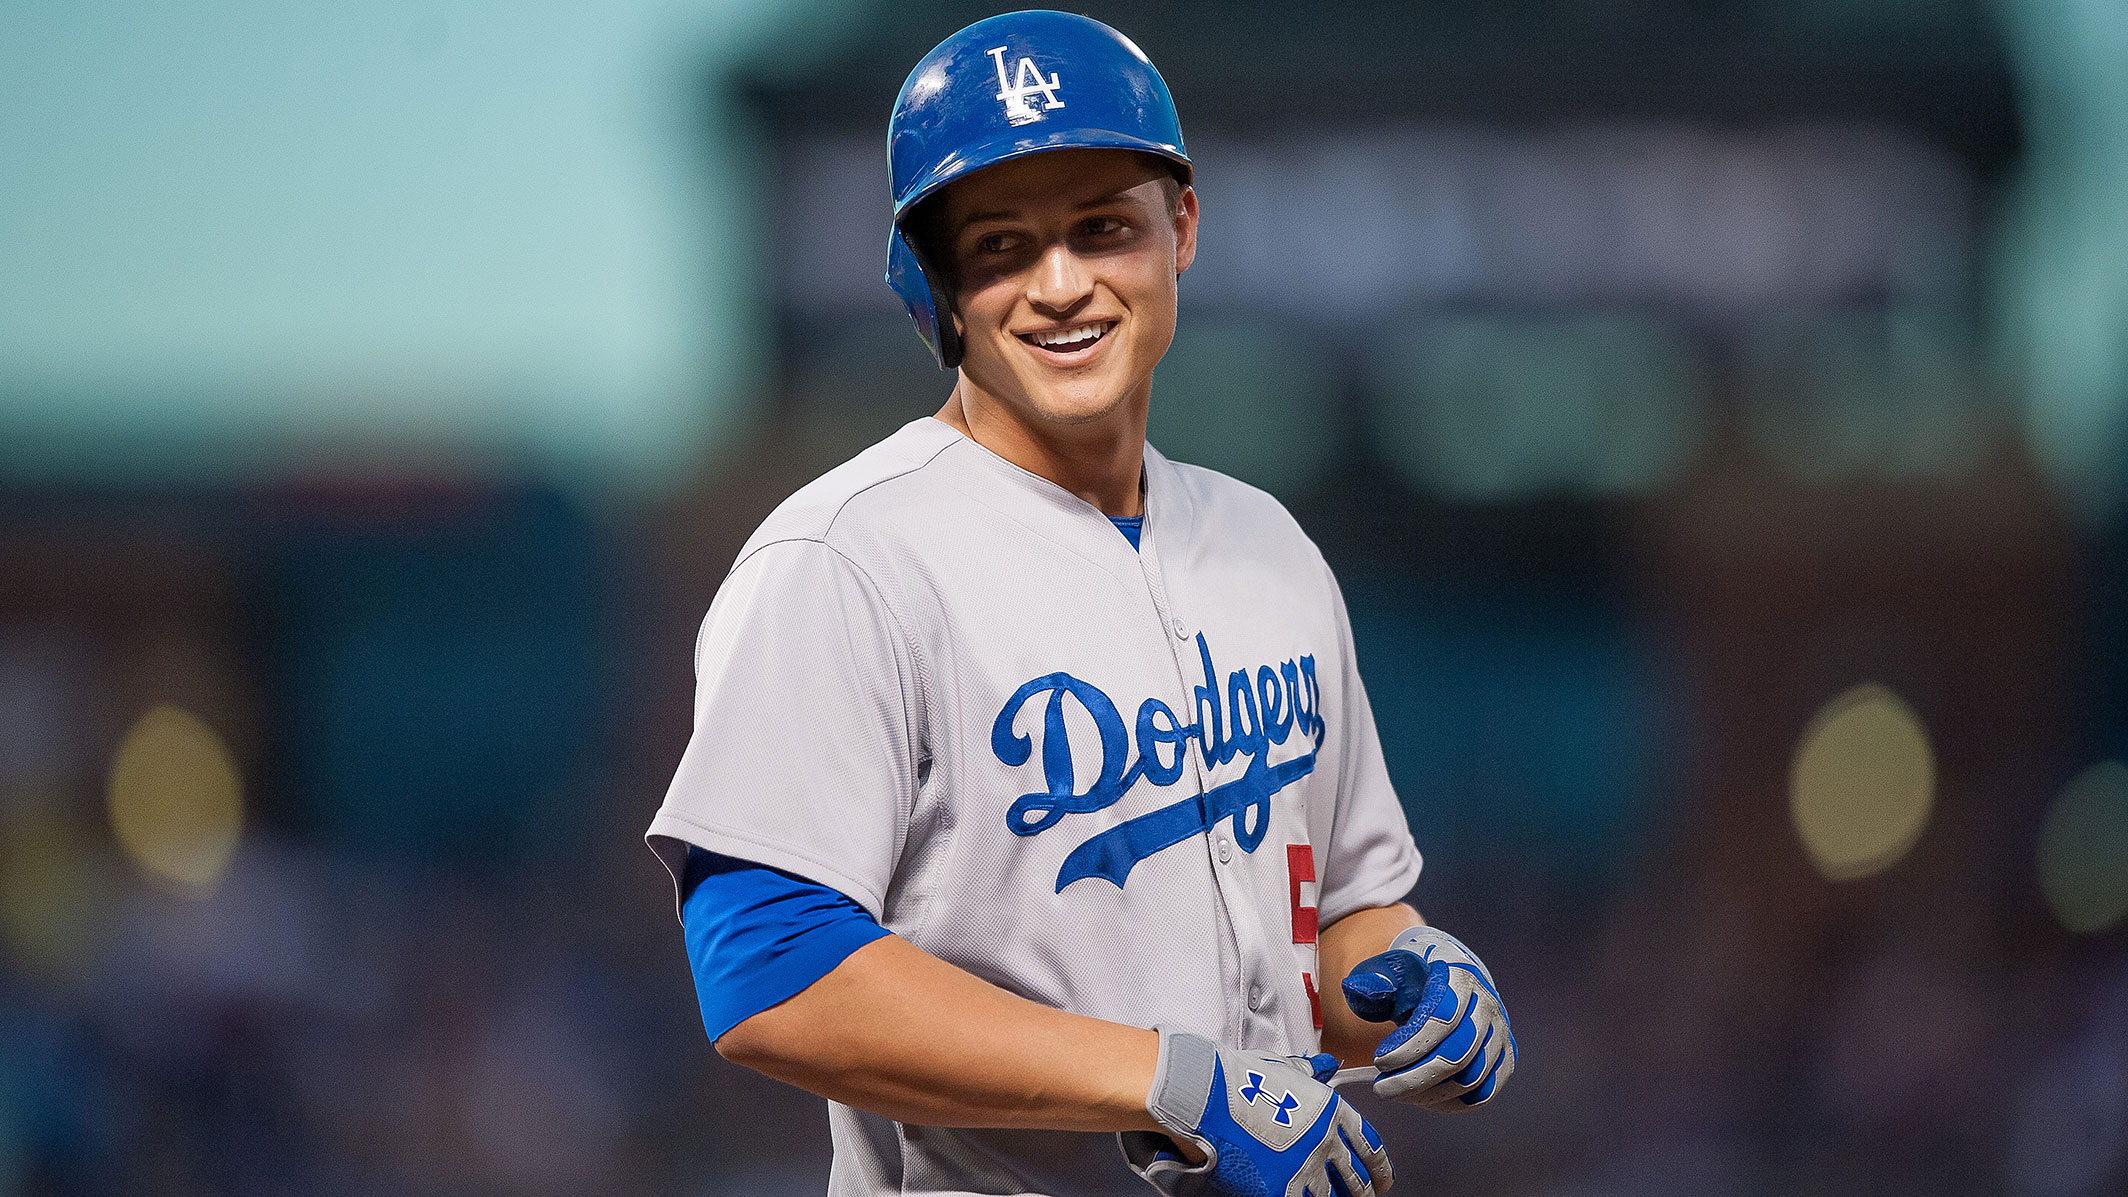 Rookie shortstop Corey Seager helped revive a Dodgers offense that slumped through the second half.